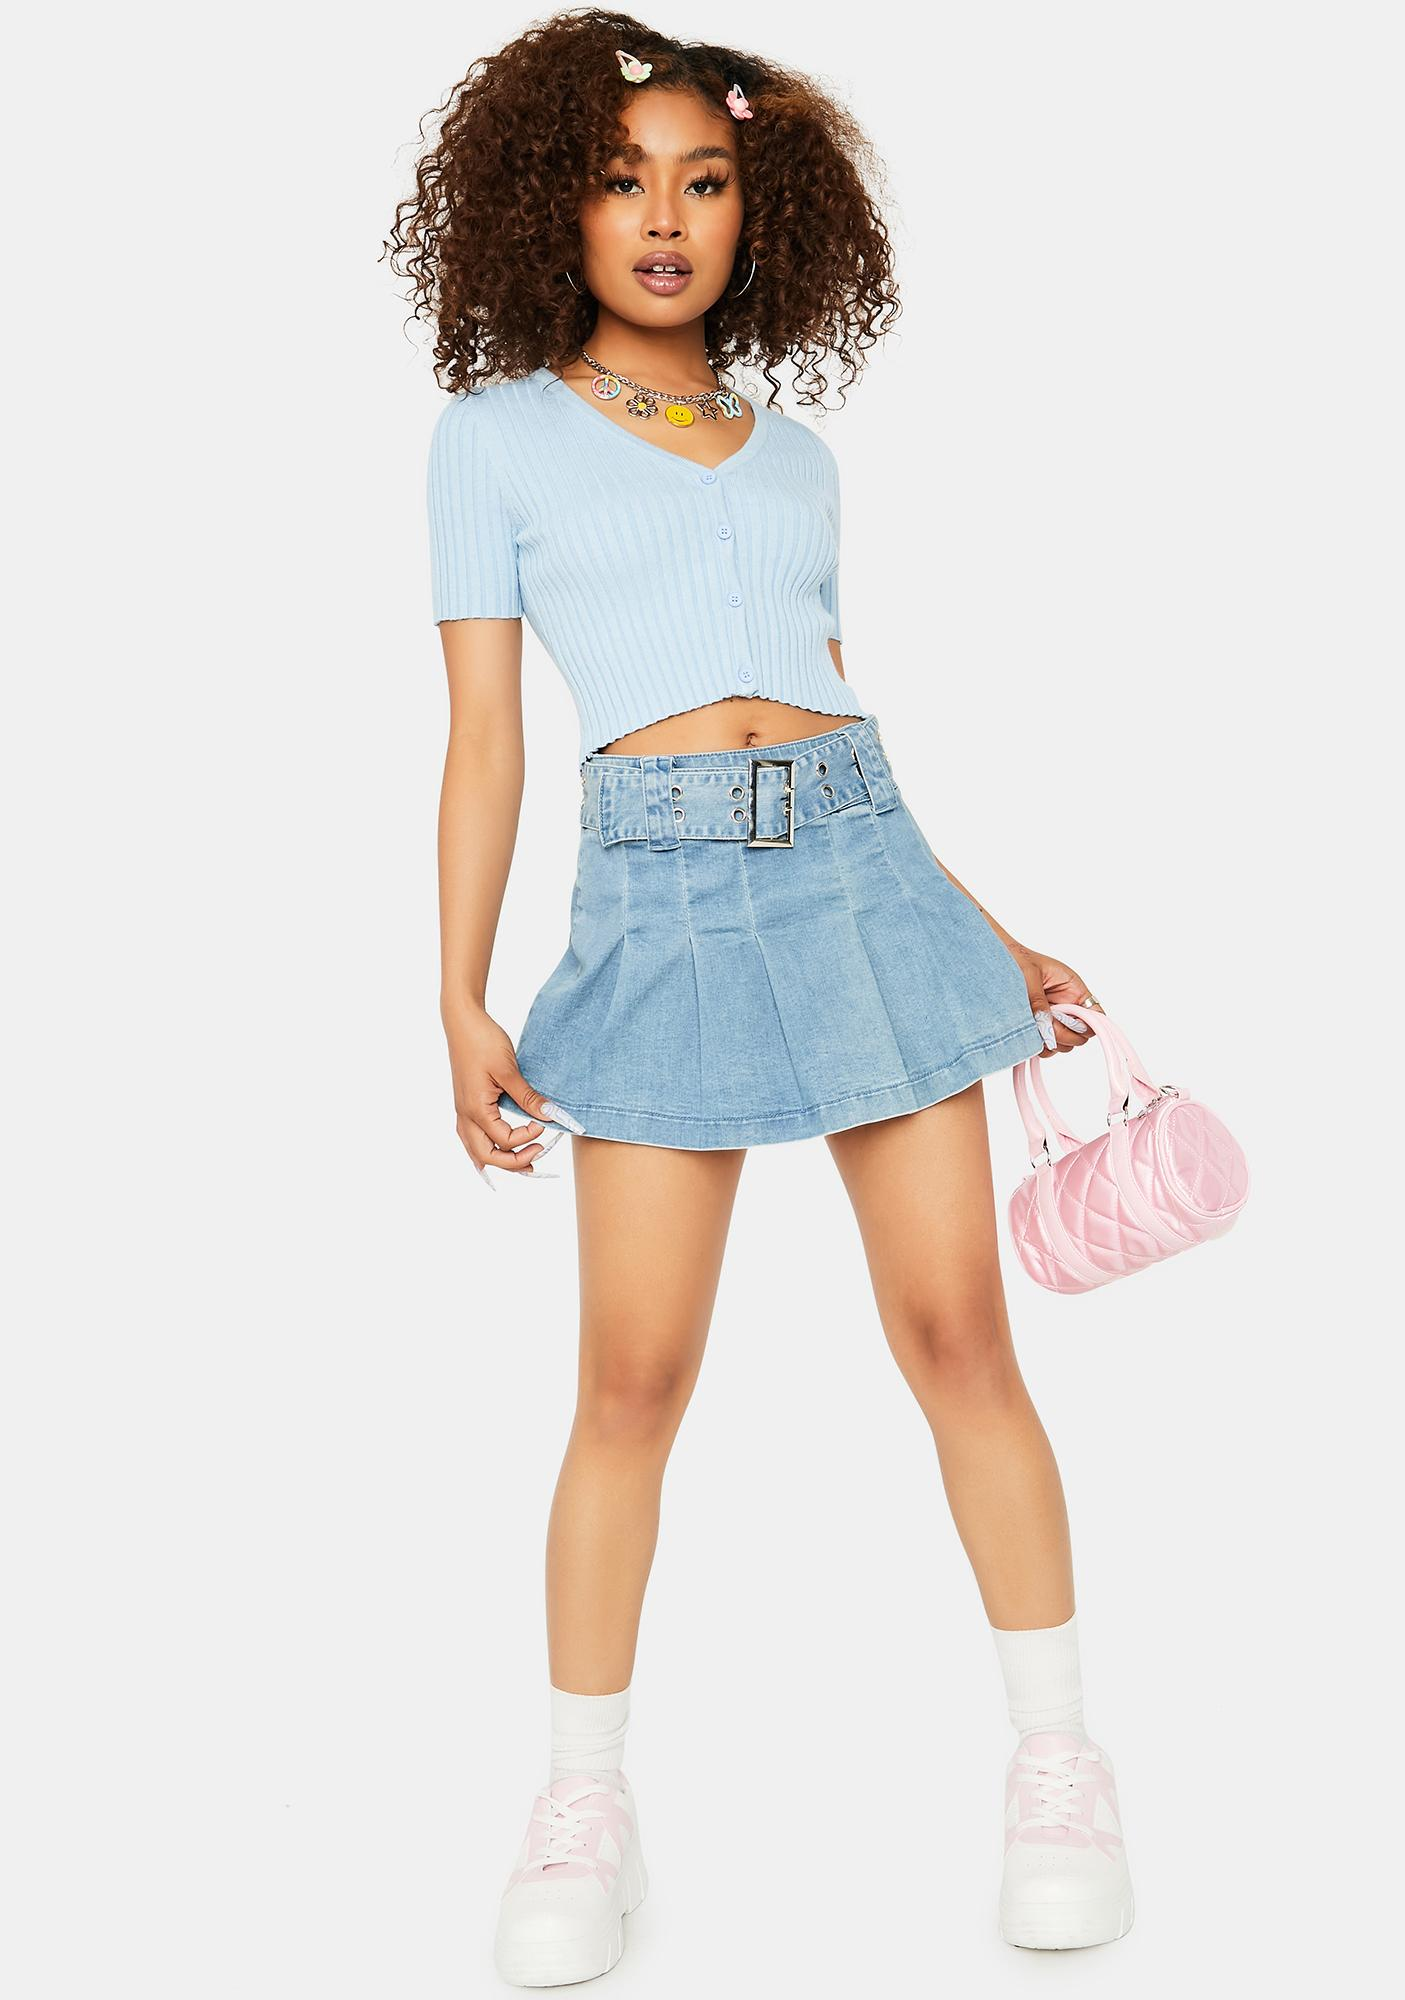 Powder That Could Be Me Cropped Cardigan